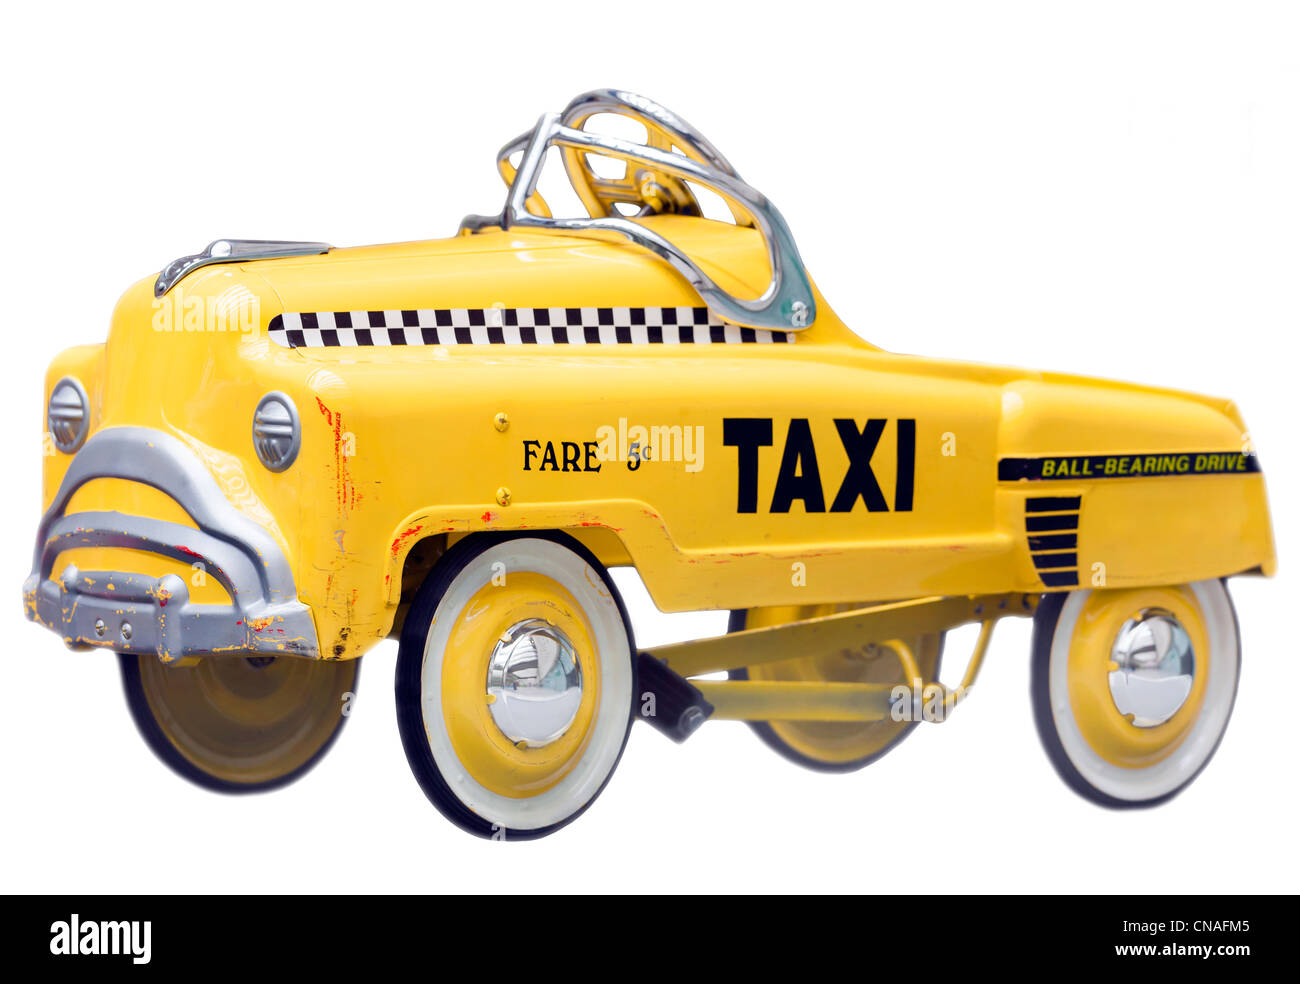 Kid's size small version of a vintage Yellow New York Taxi Cab. A push bike pedal car. Cut out isolated on a - Stock Image